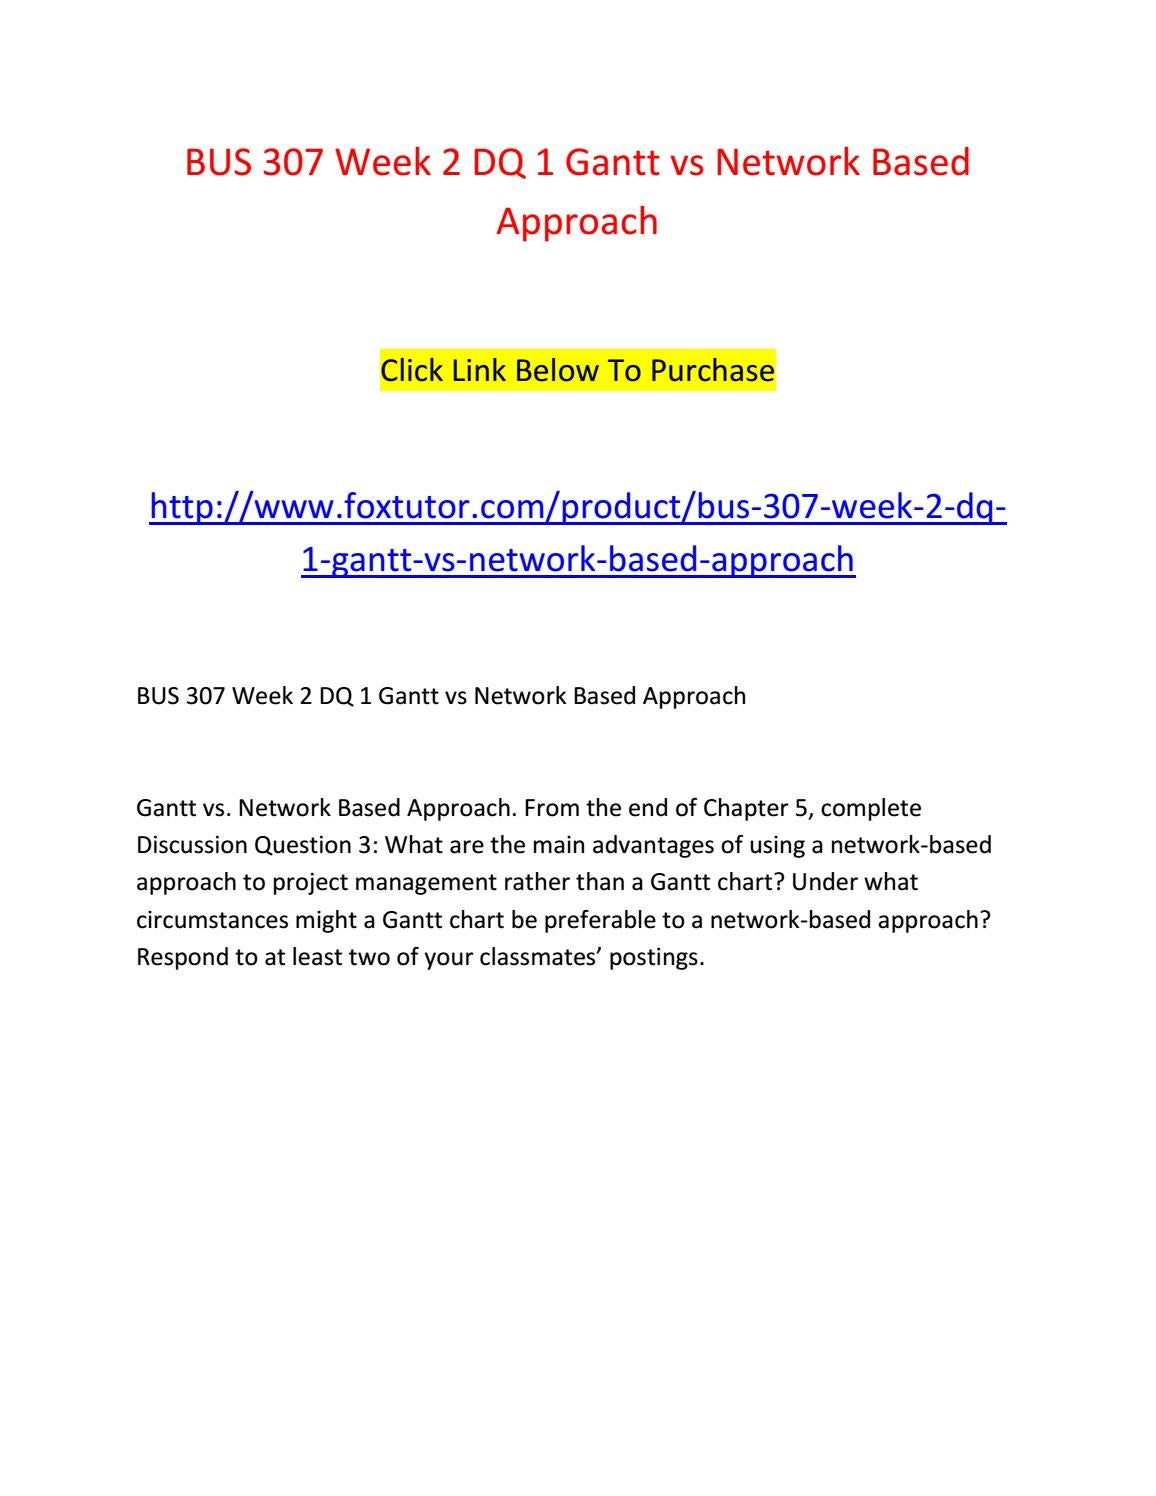 Bus 307 Week 2 Dq 1 Gantt Vs Network Based Approach By Bus307ft Issuu